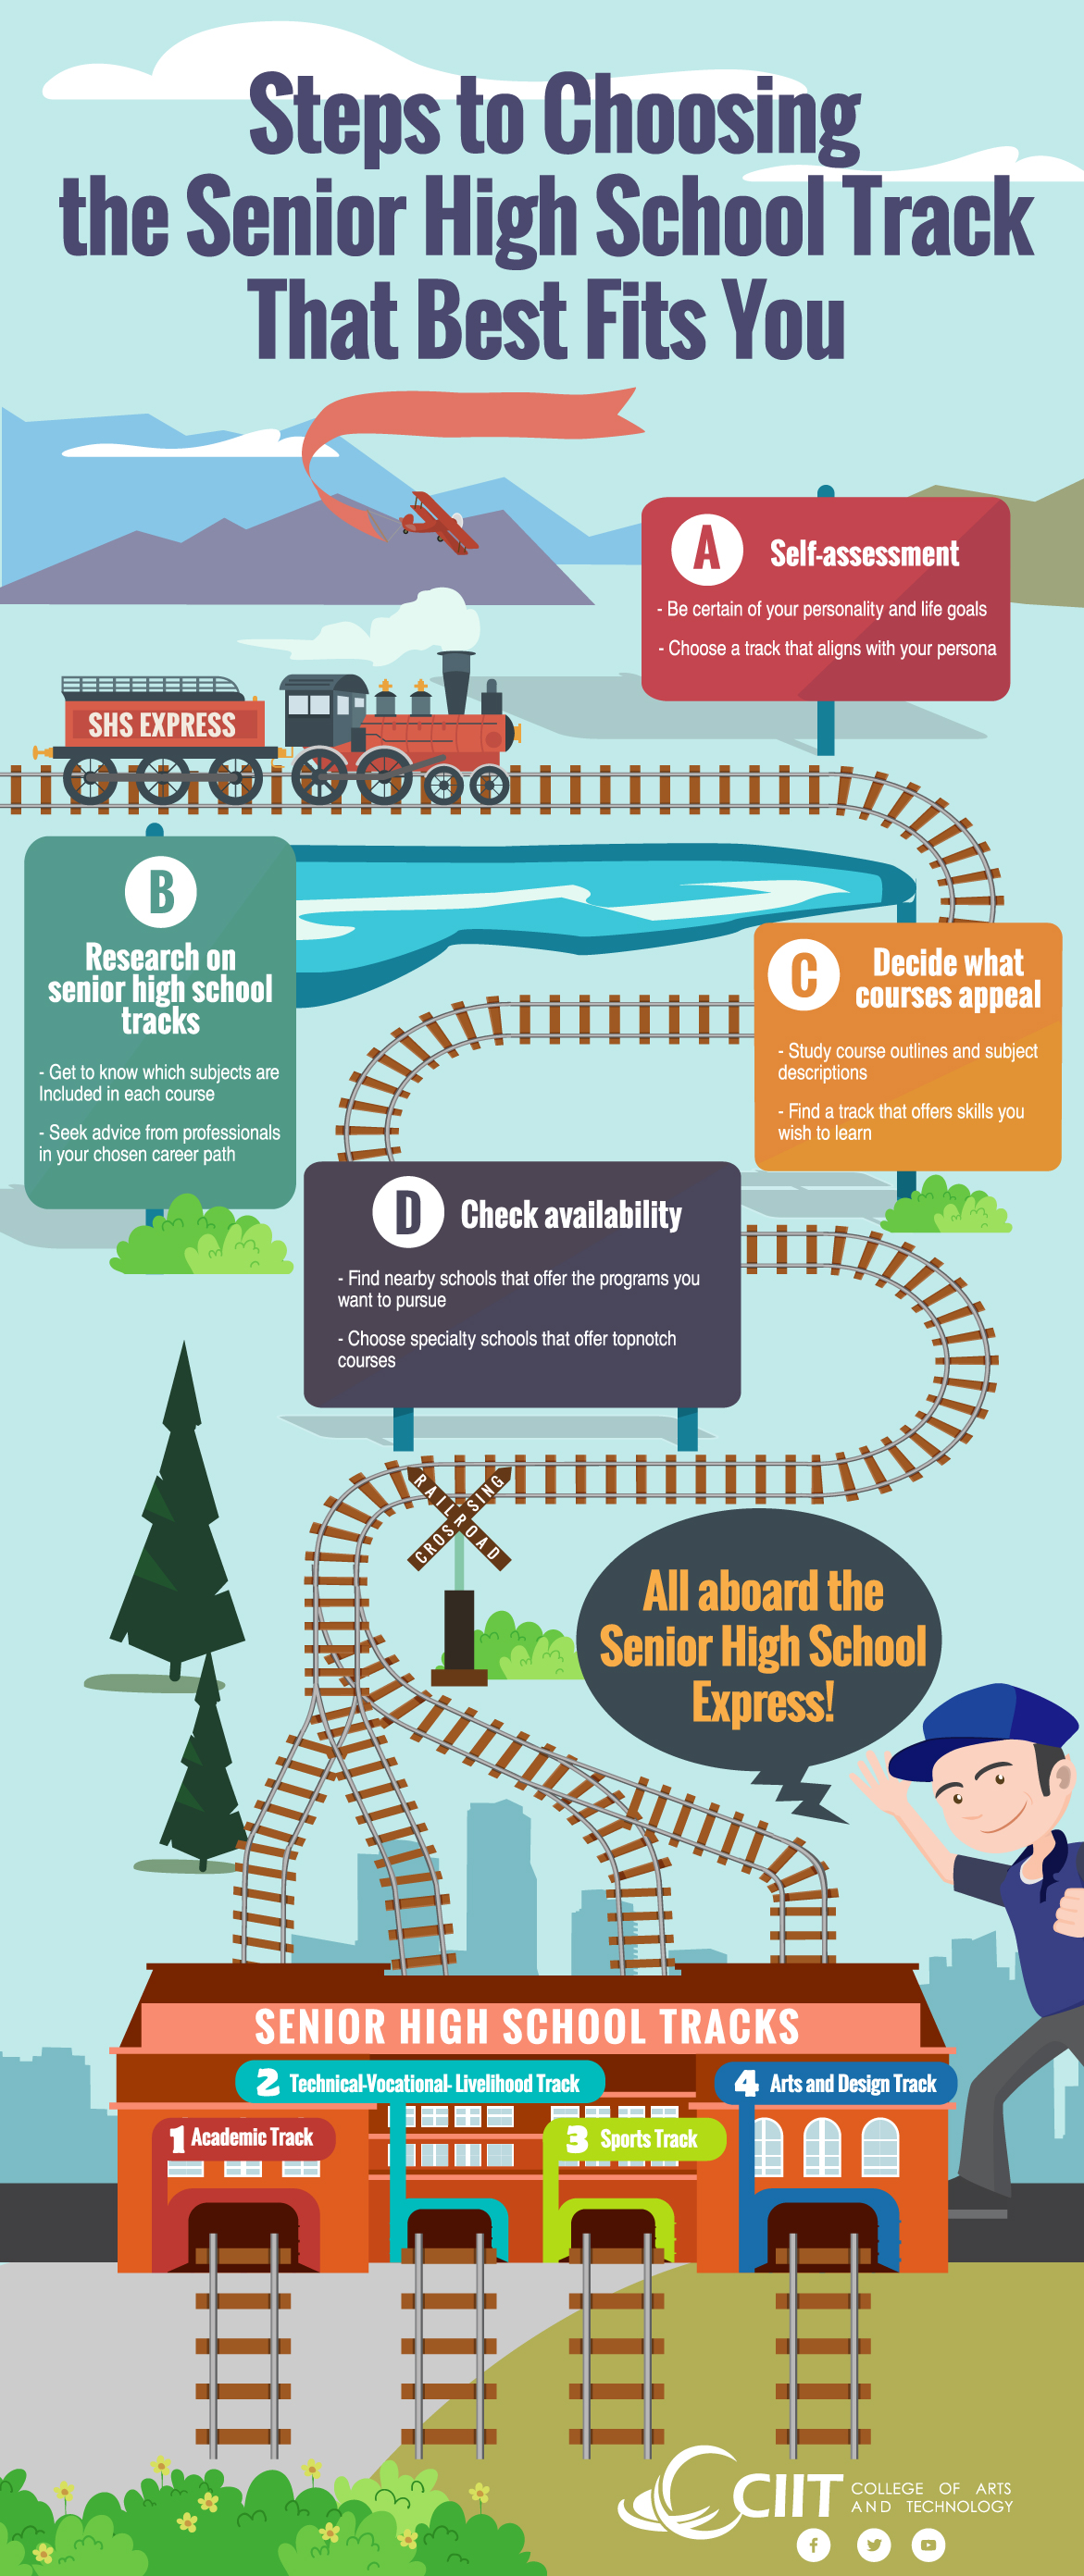 CIIT's Infographic on the Steps to Choosing the Senior High School